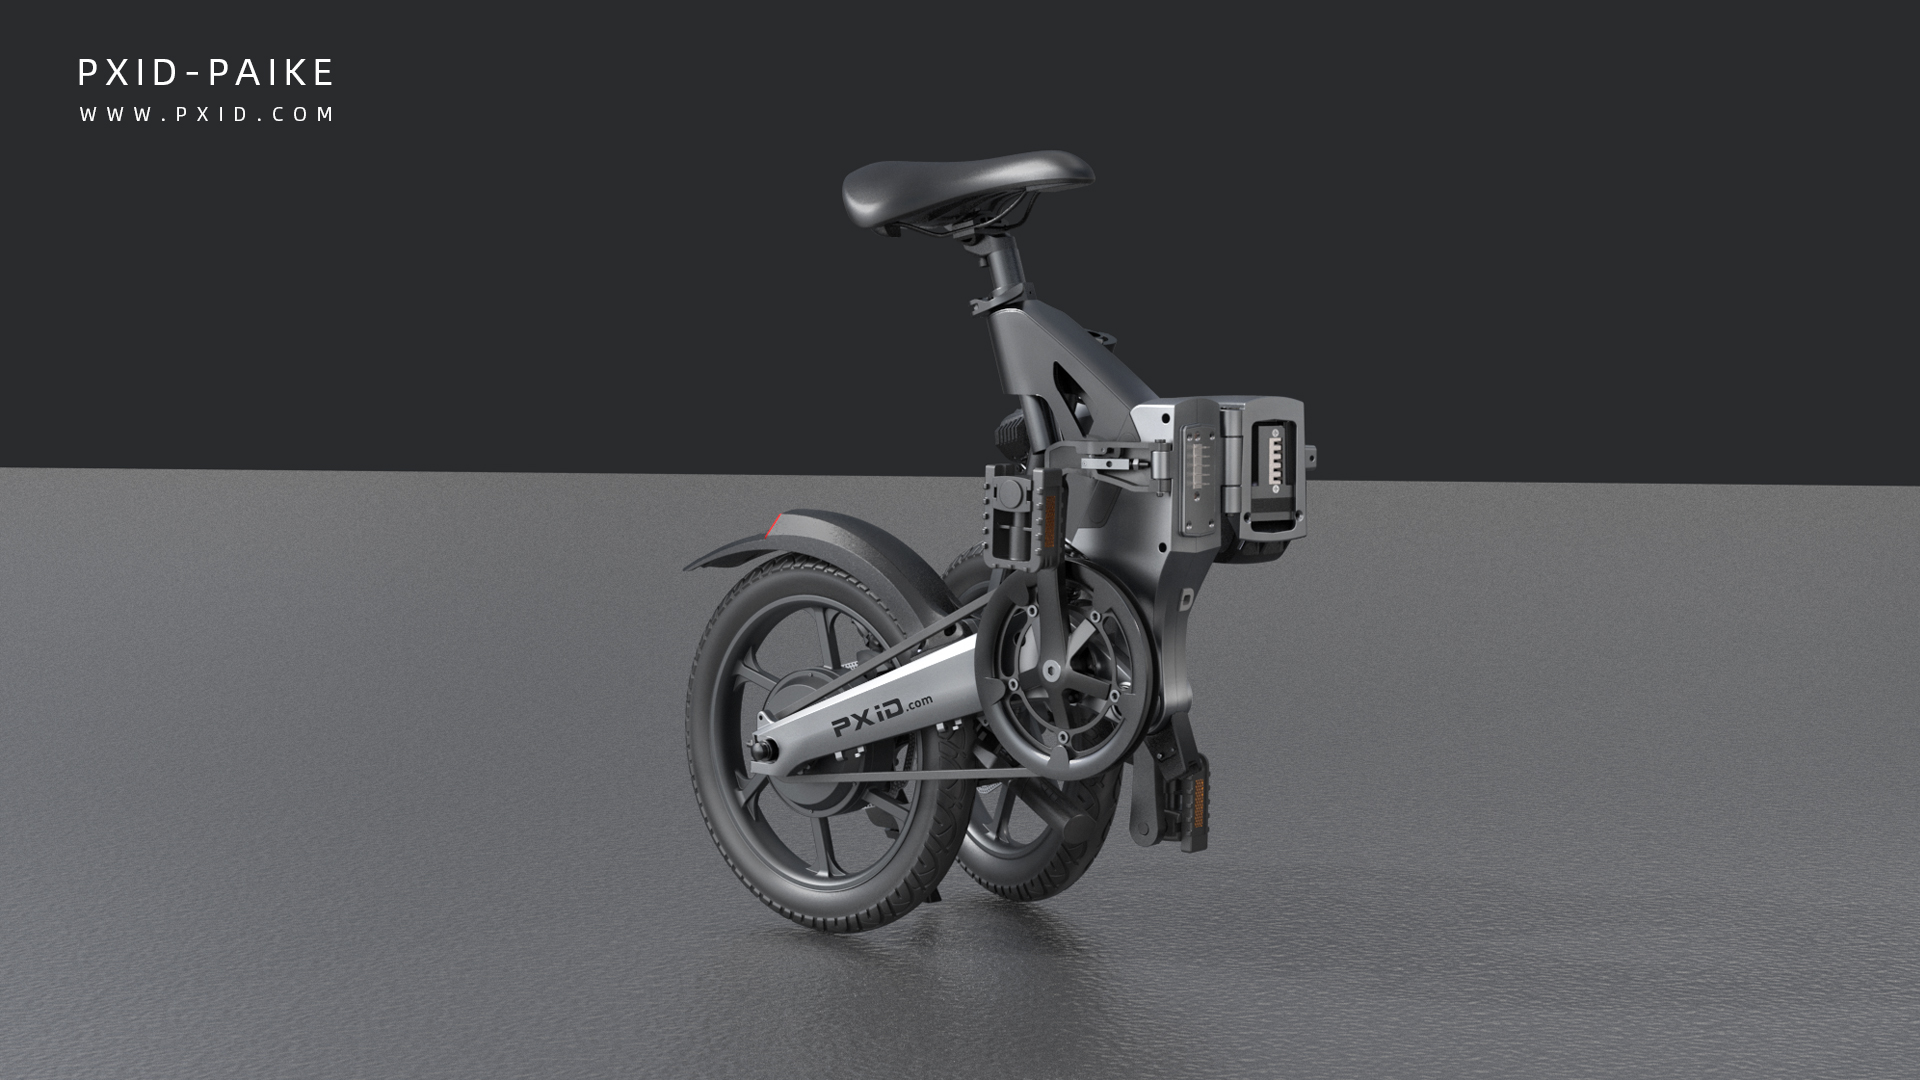 P2-16 inch folding electric bike design